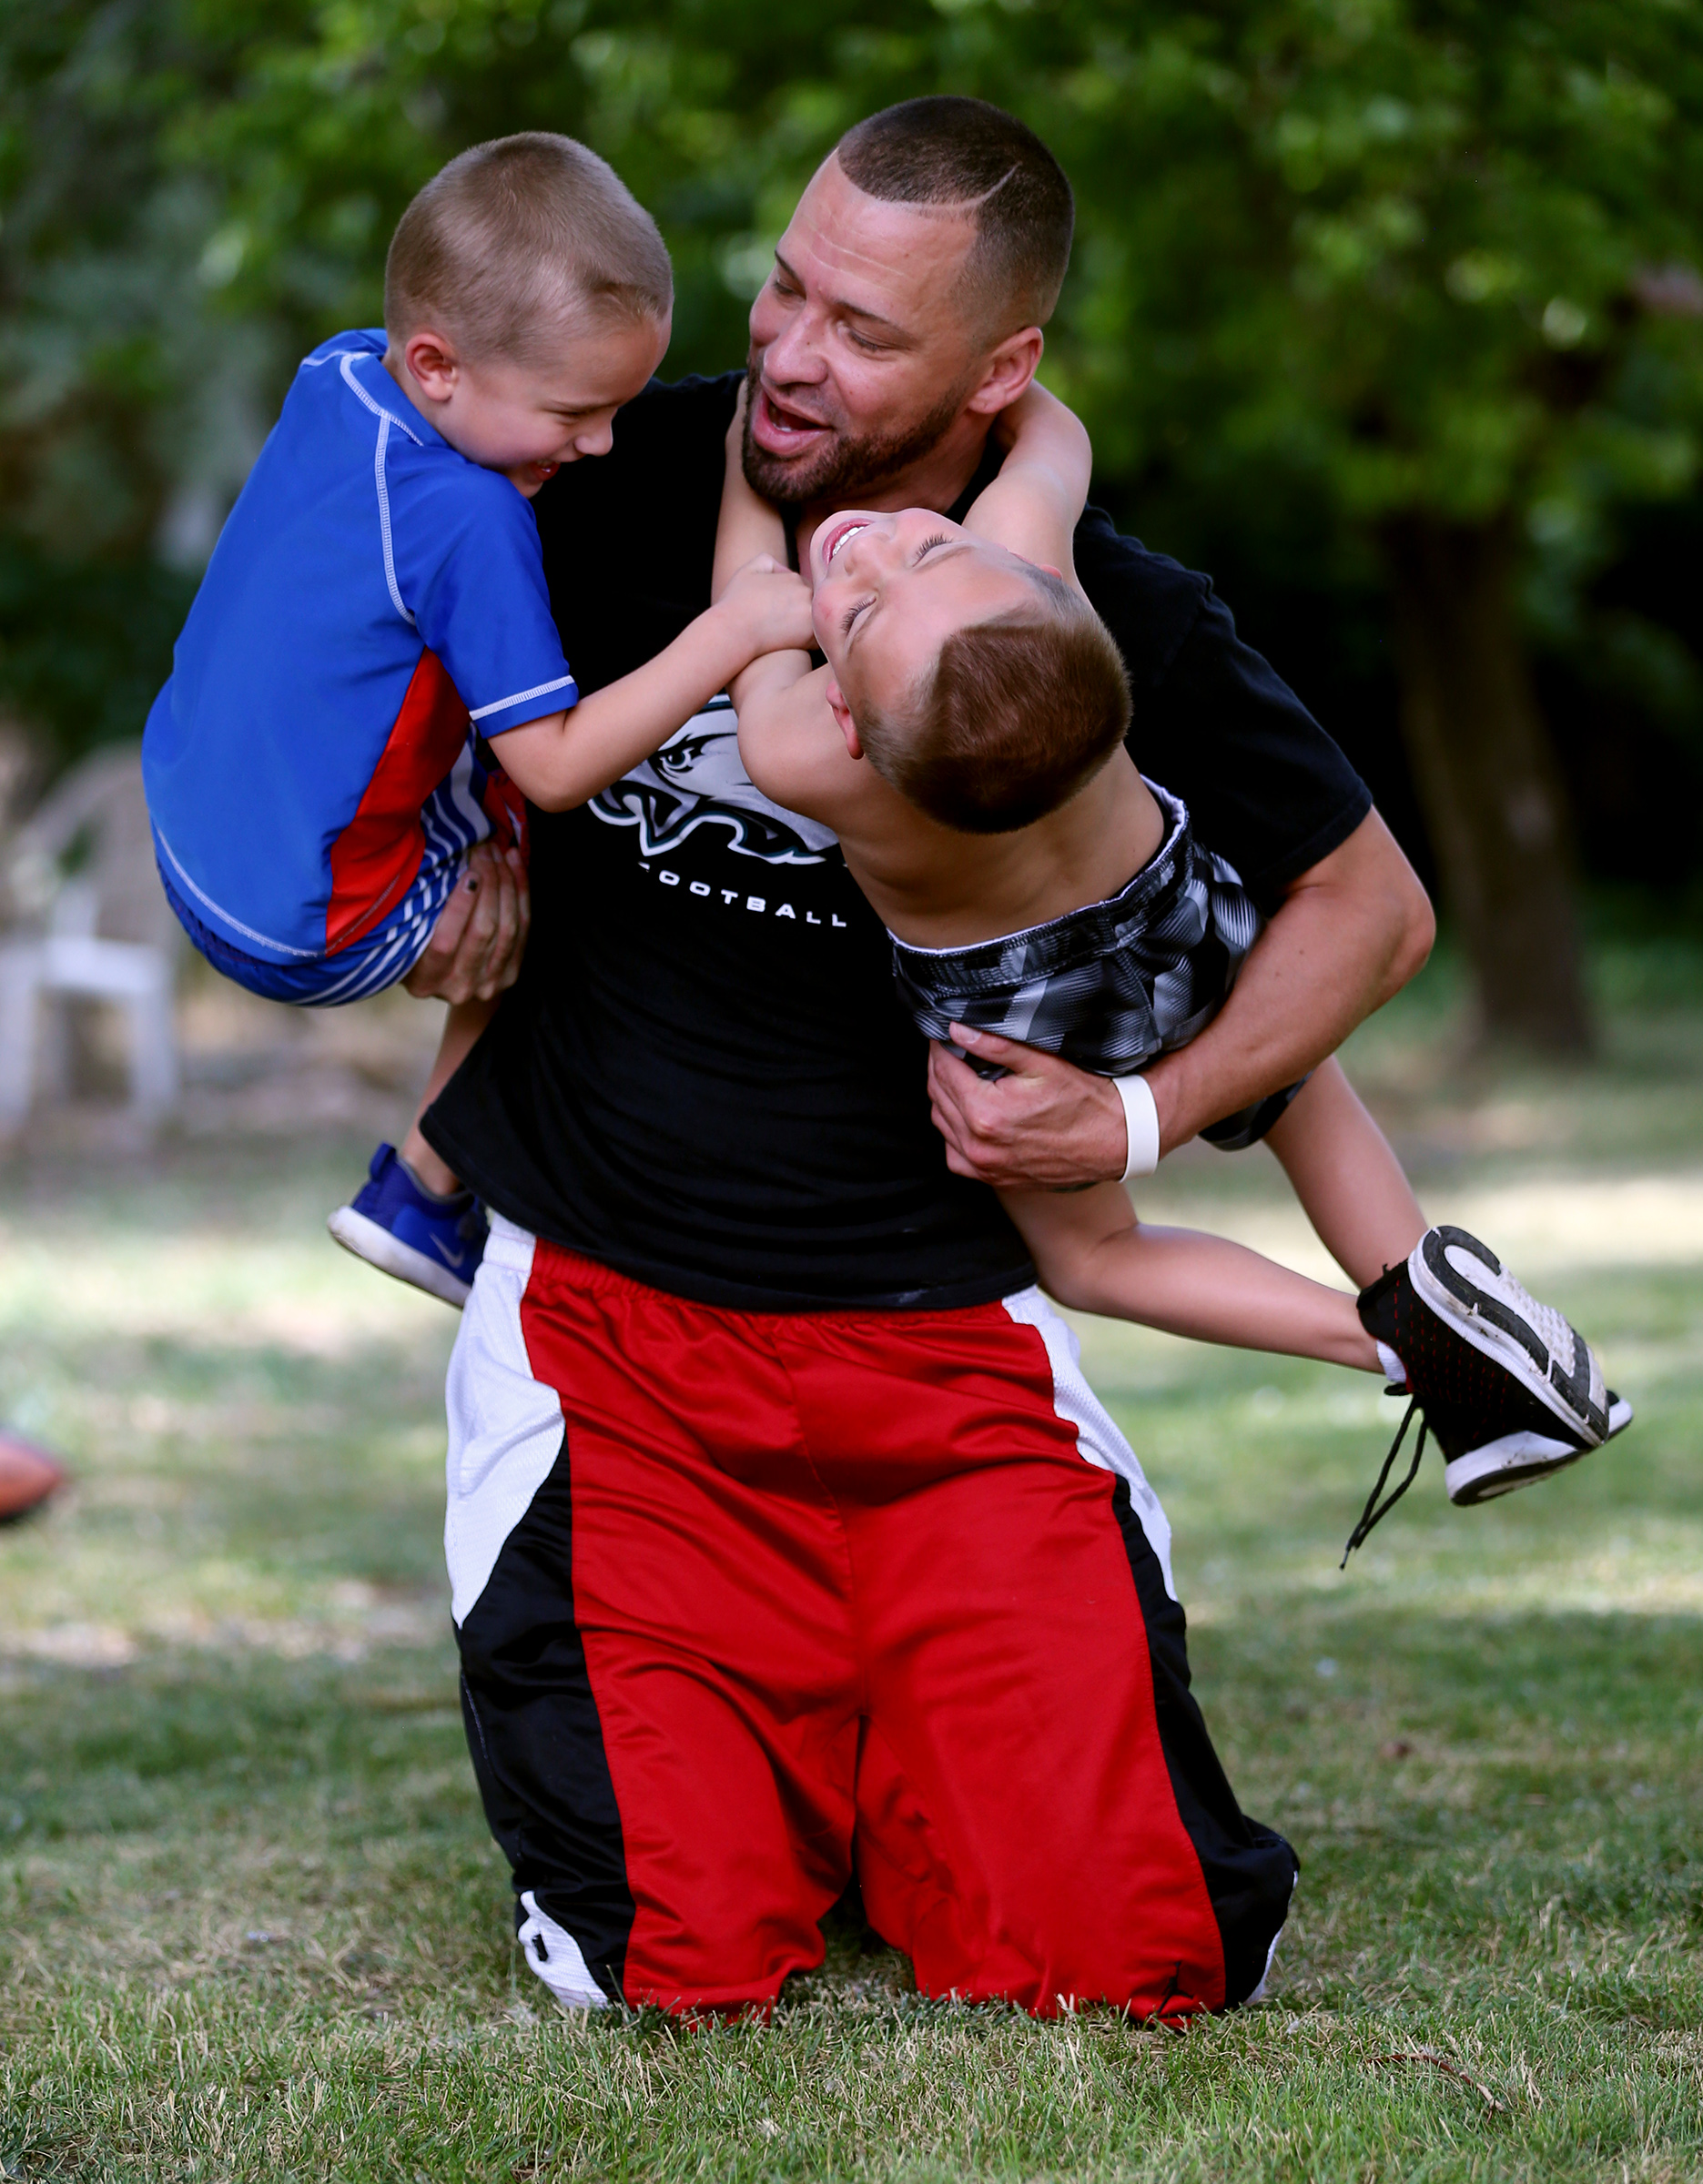 John Chapman wrestles with his boys, Easton and Braxton, as he tries to get them to settle down for a posed photo in their backyard in Holladay on Friday, June 5, 2020.